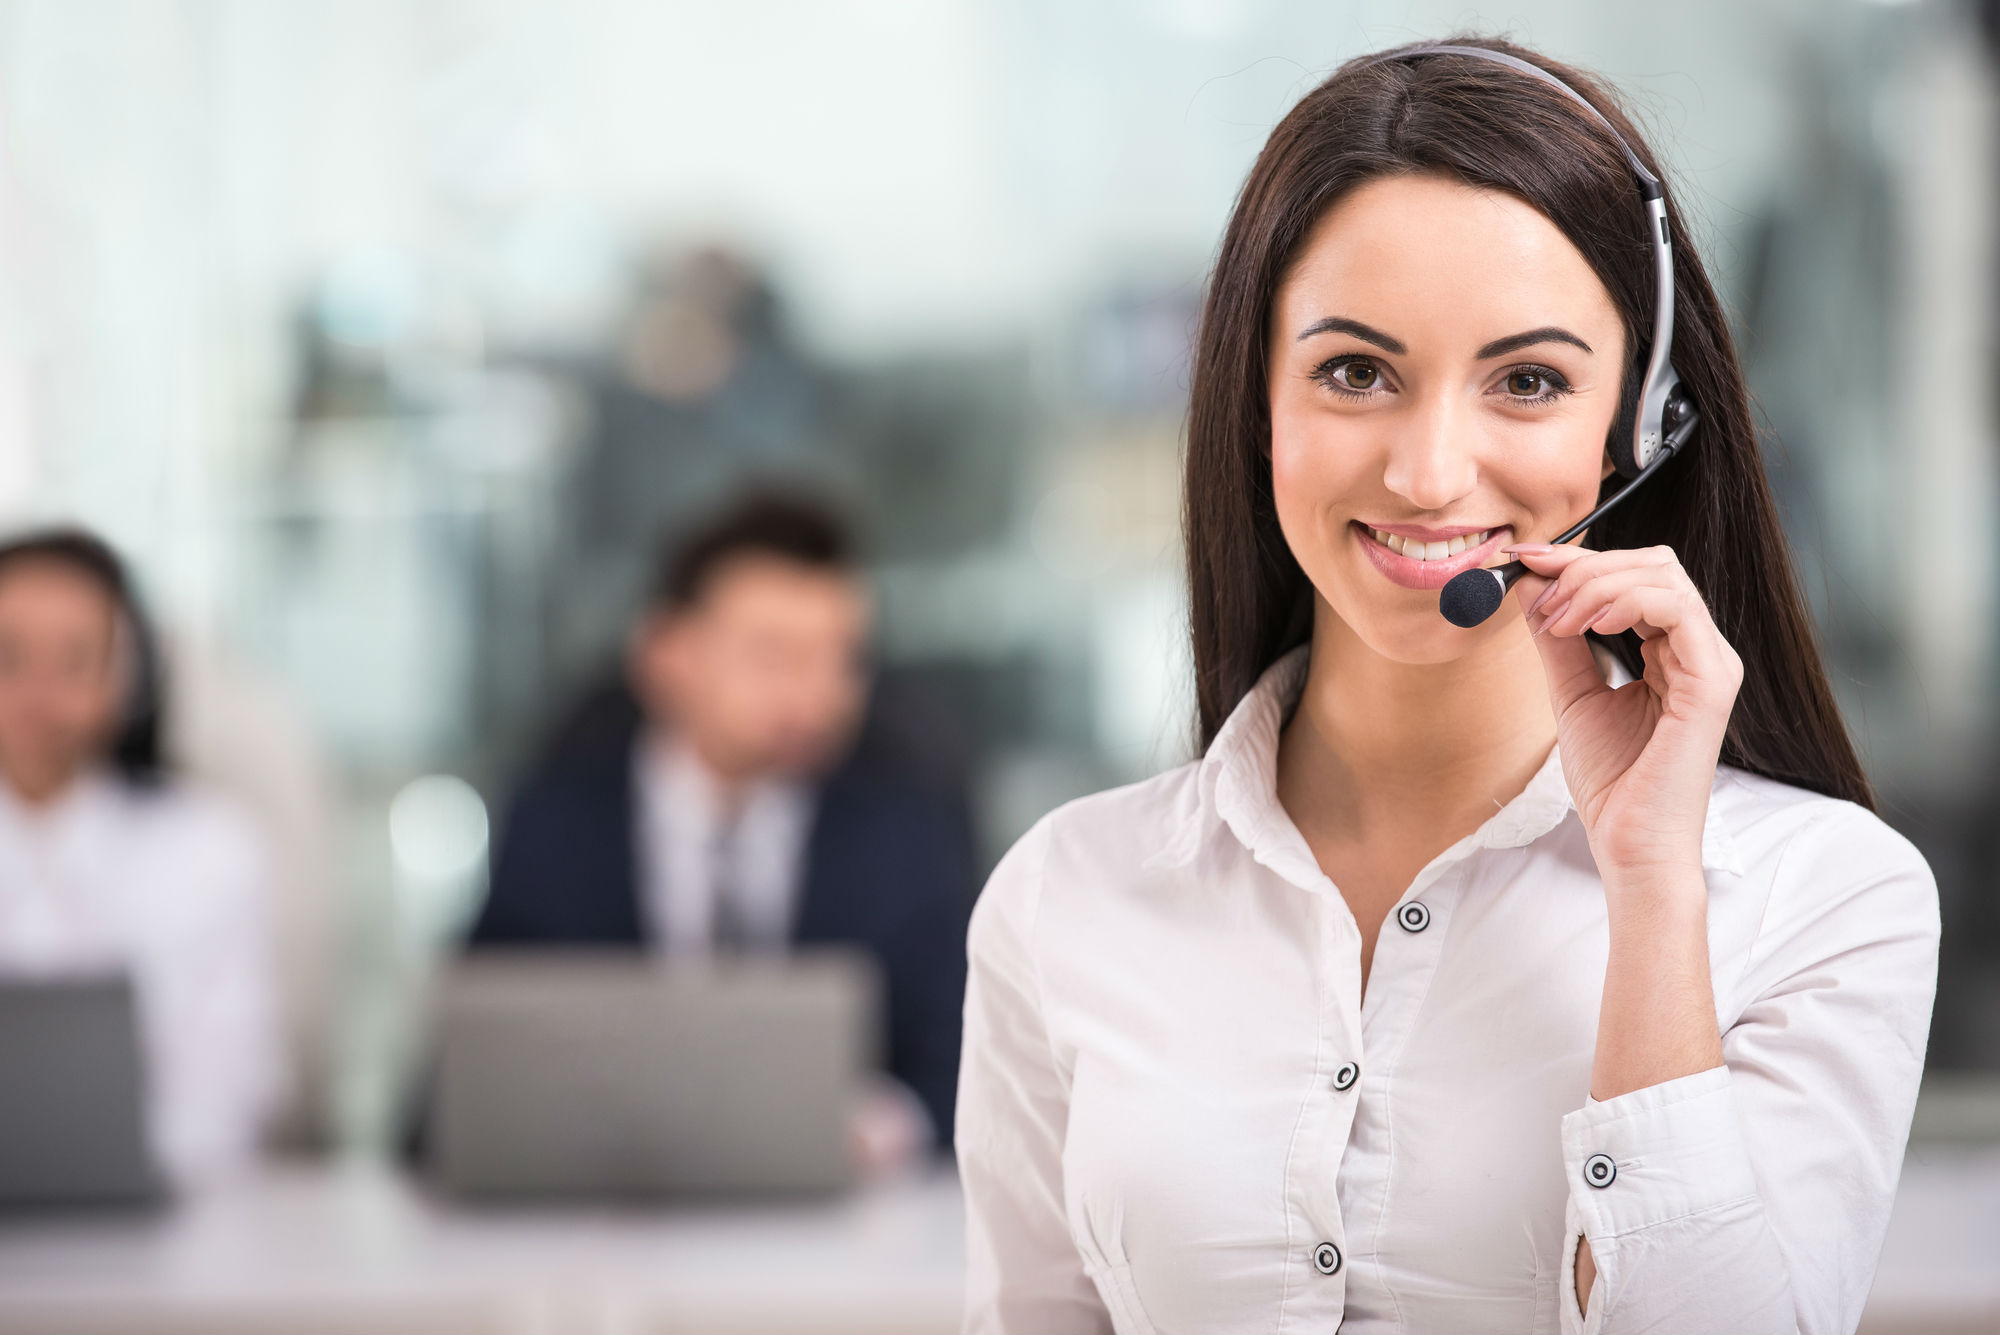 The culture shock of india's call centers